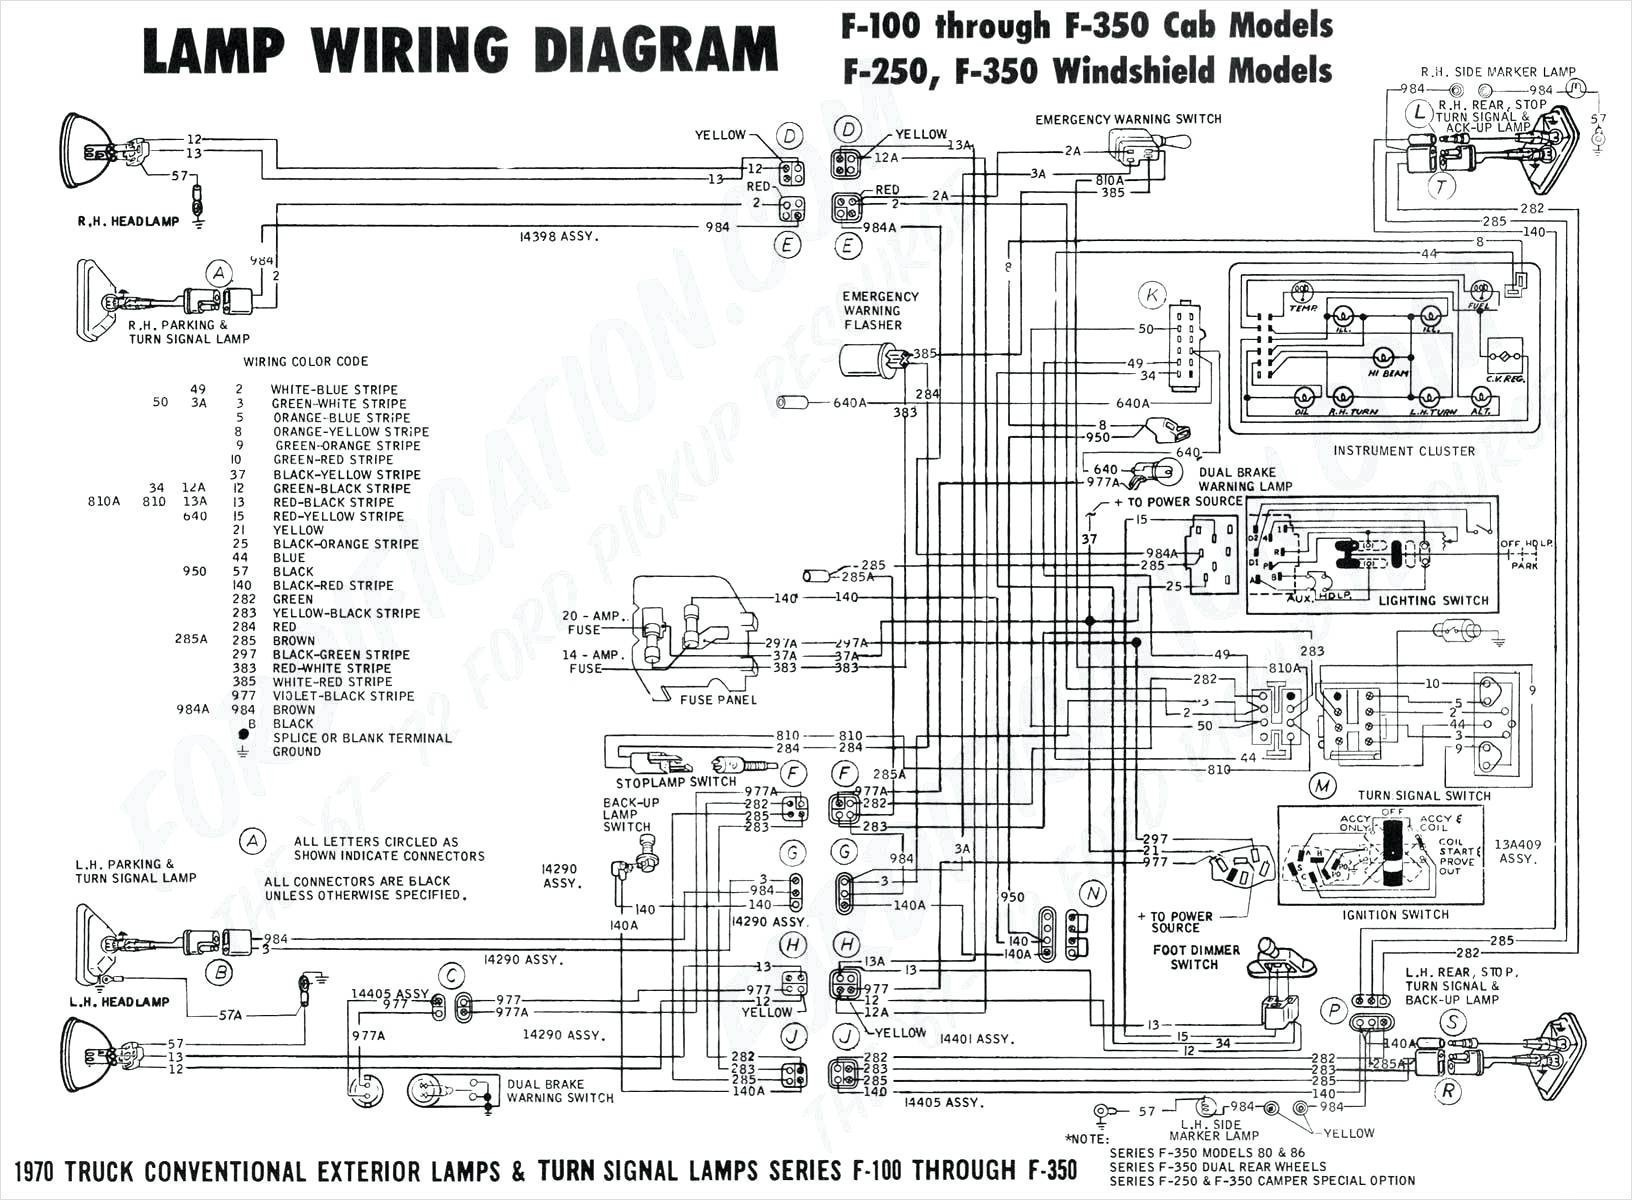 2007 dodge ram 1500 brakes lights wiring diagram